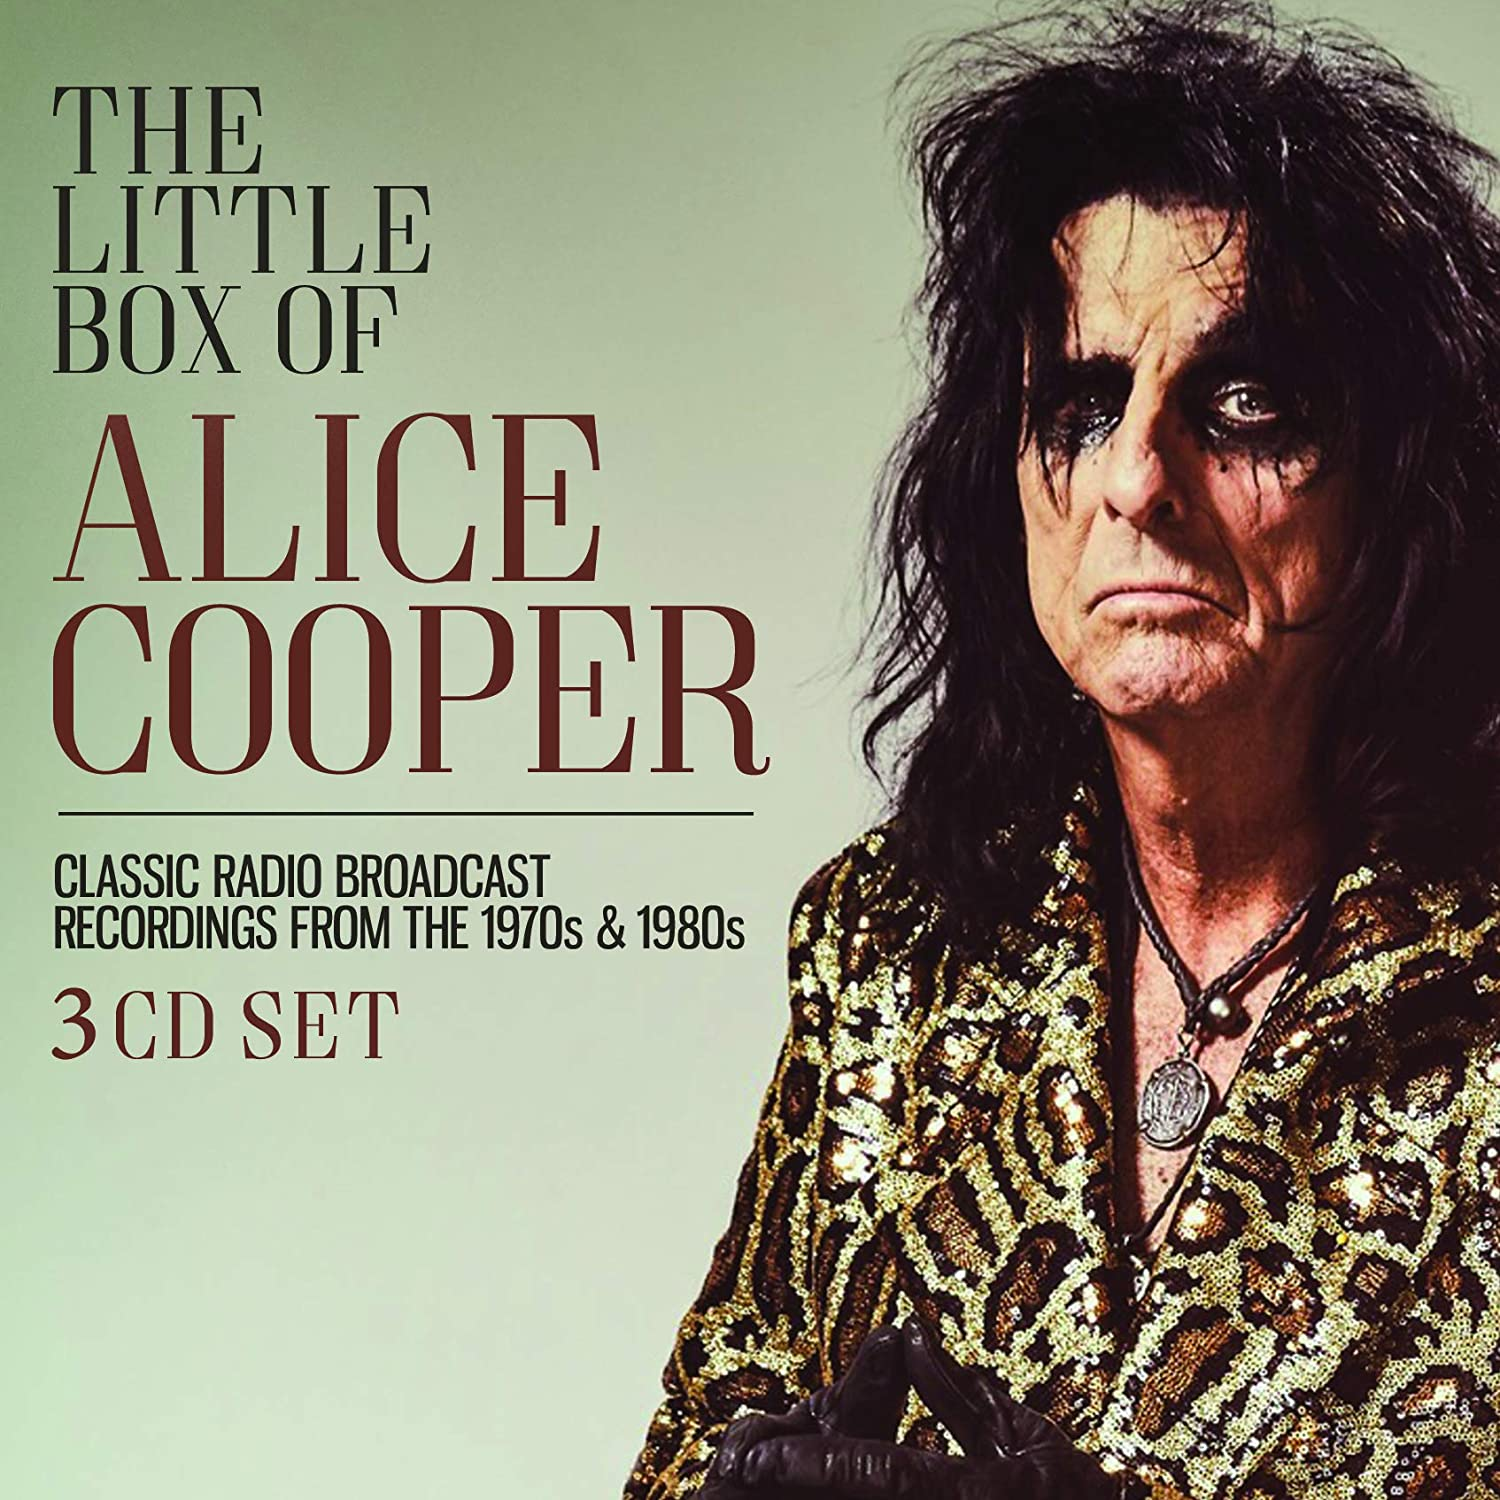 Little Box Of Alice Cooper